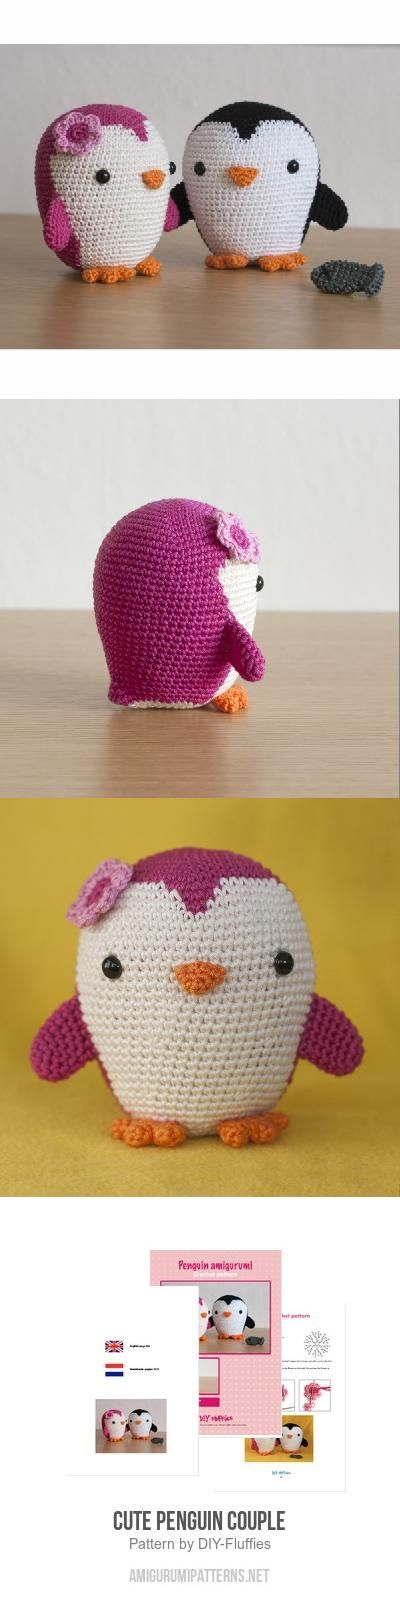 Cute Penguin Couple Amigurumi Pattern